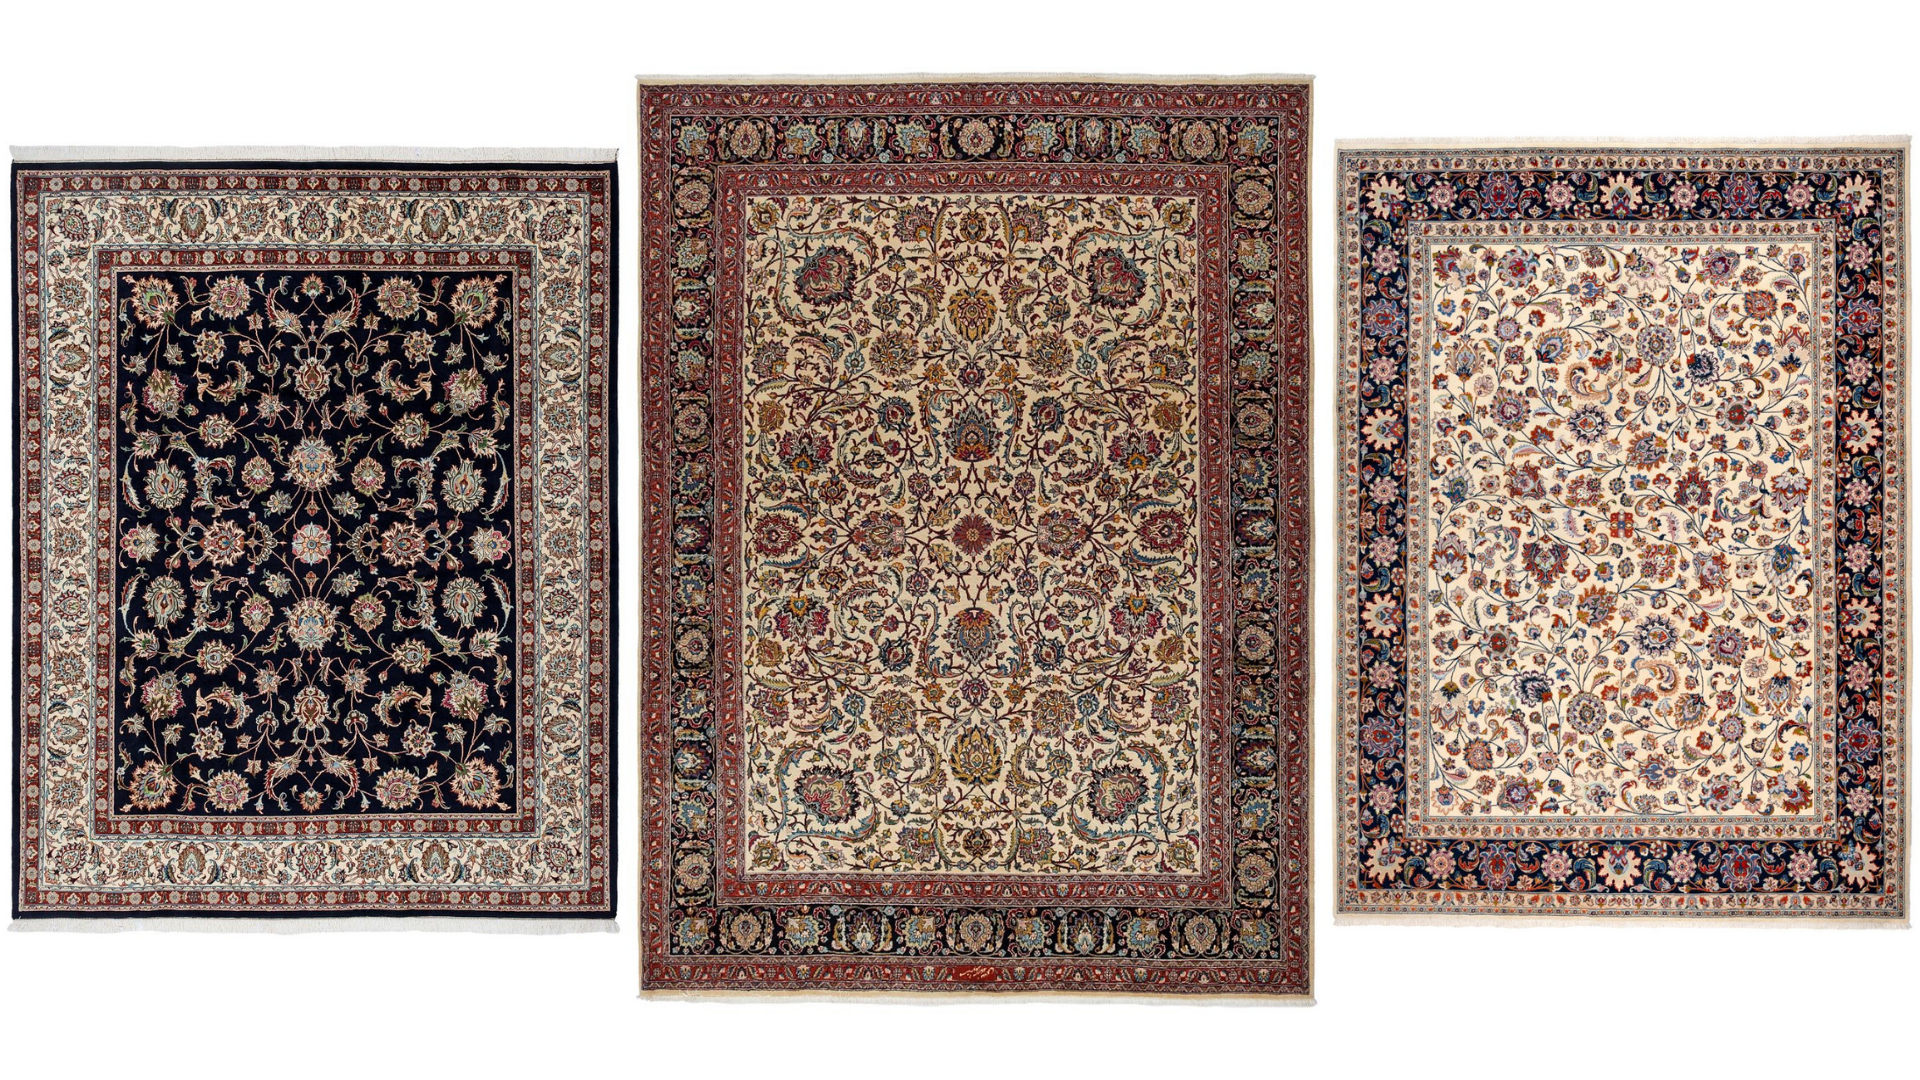 persian rugs, oriental rugs, home decor, home accessories, interior decor, interior design, london rugs, uk rugs, rug collections, rug guide, rug encyclopedia